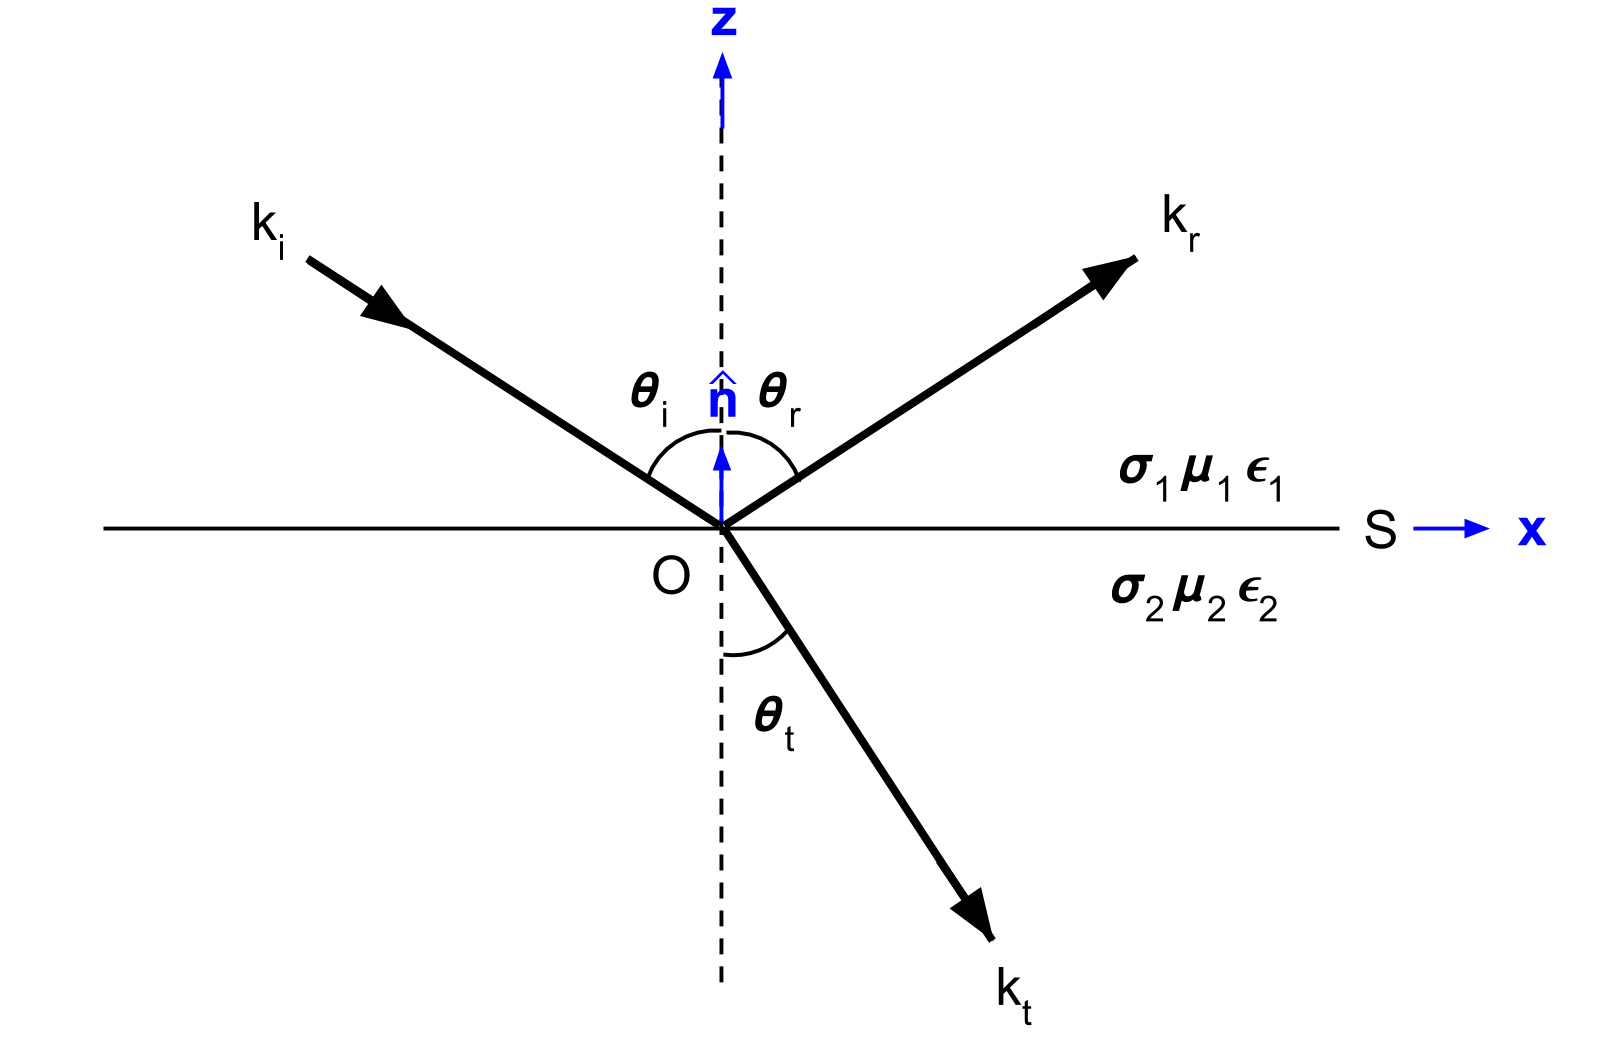 Poyting vector complex. Reflection and snell s